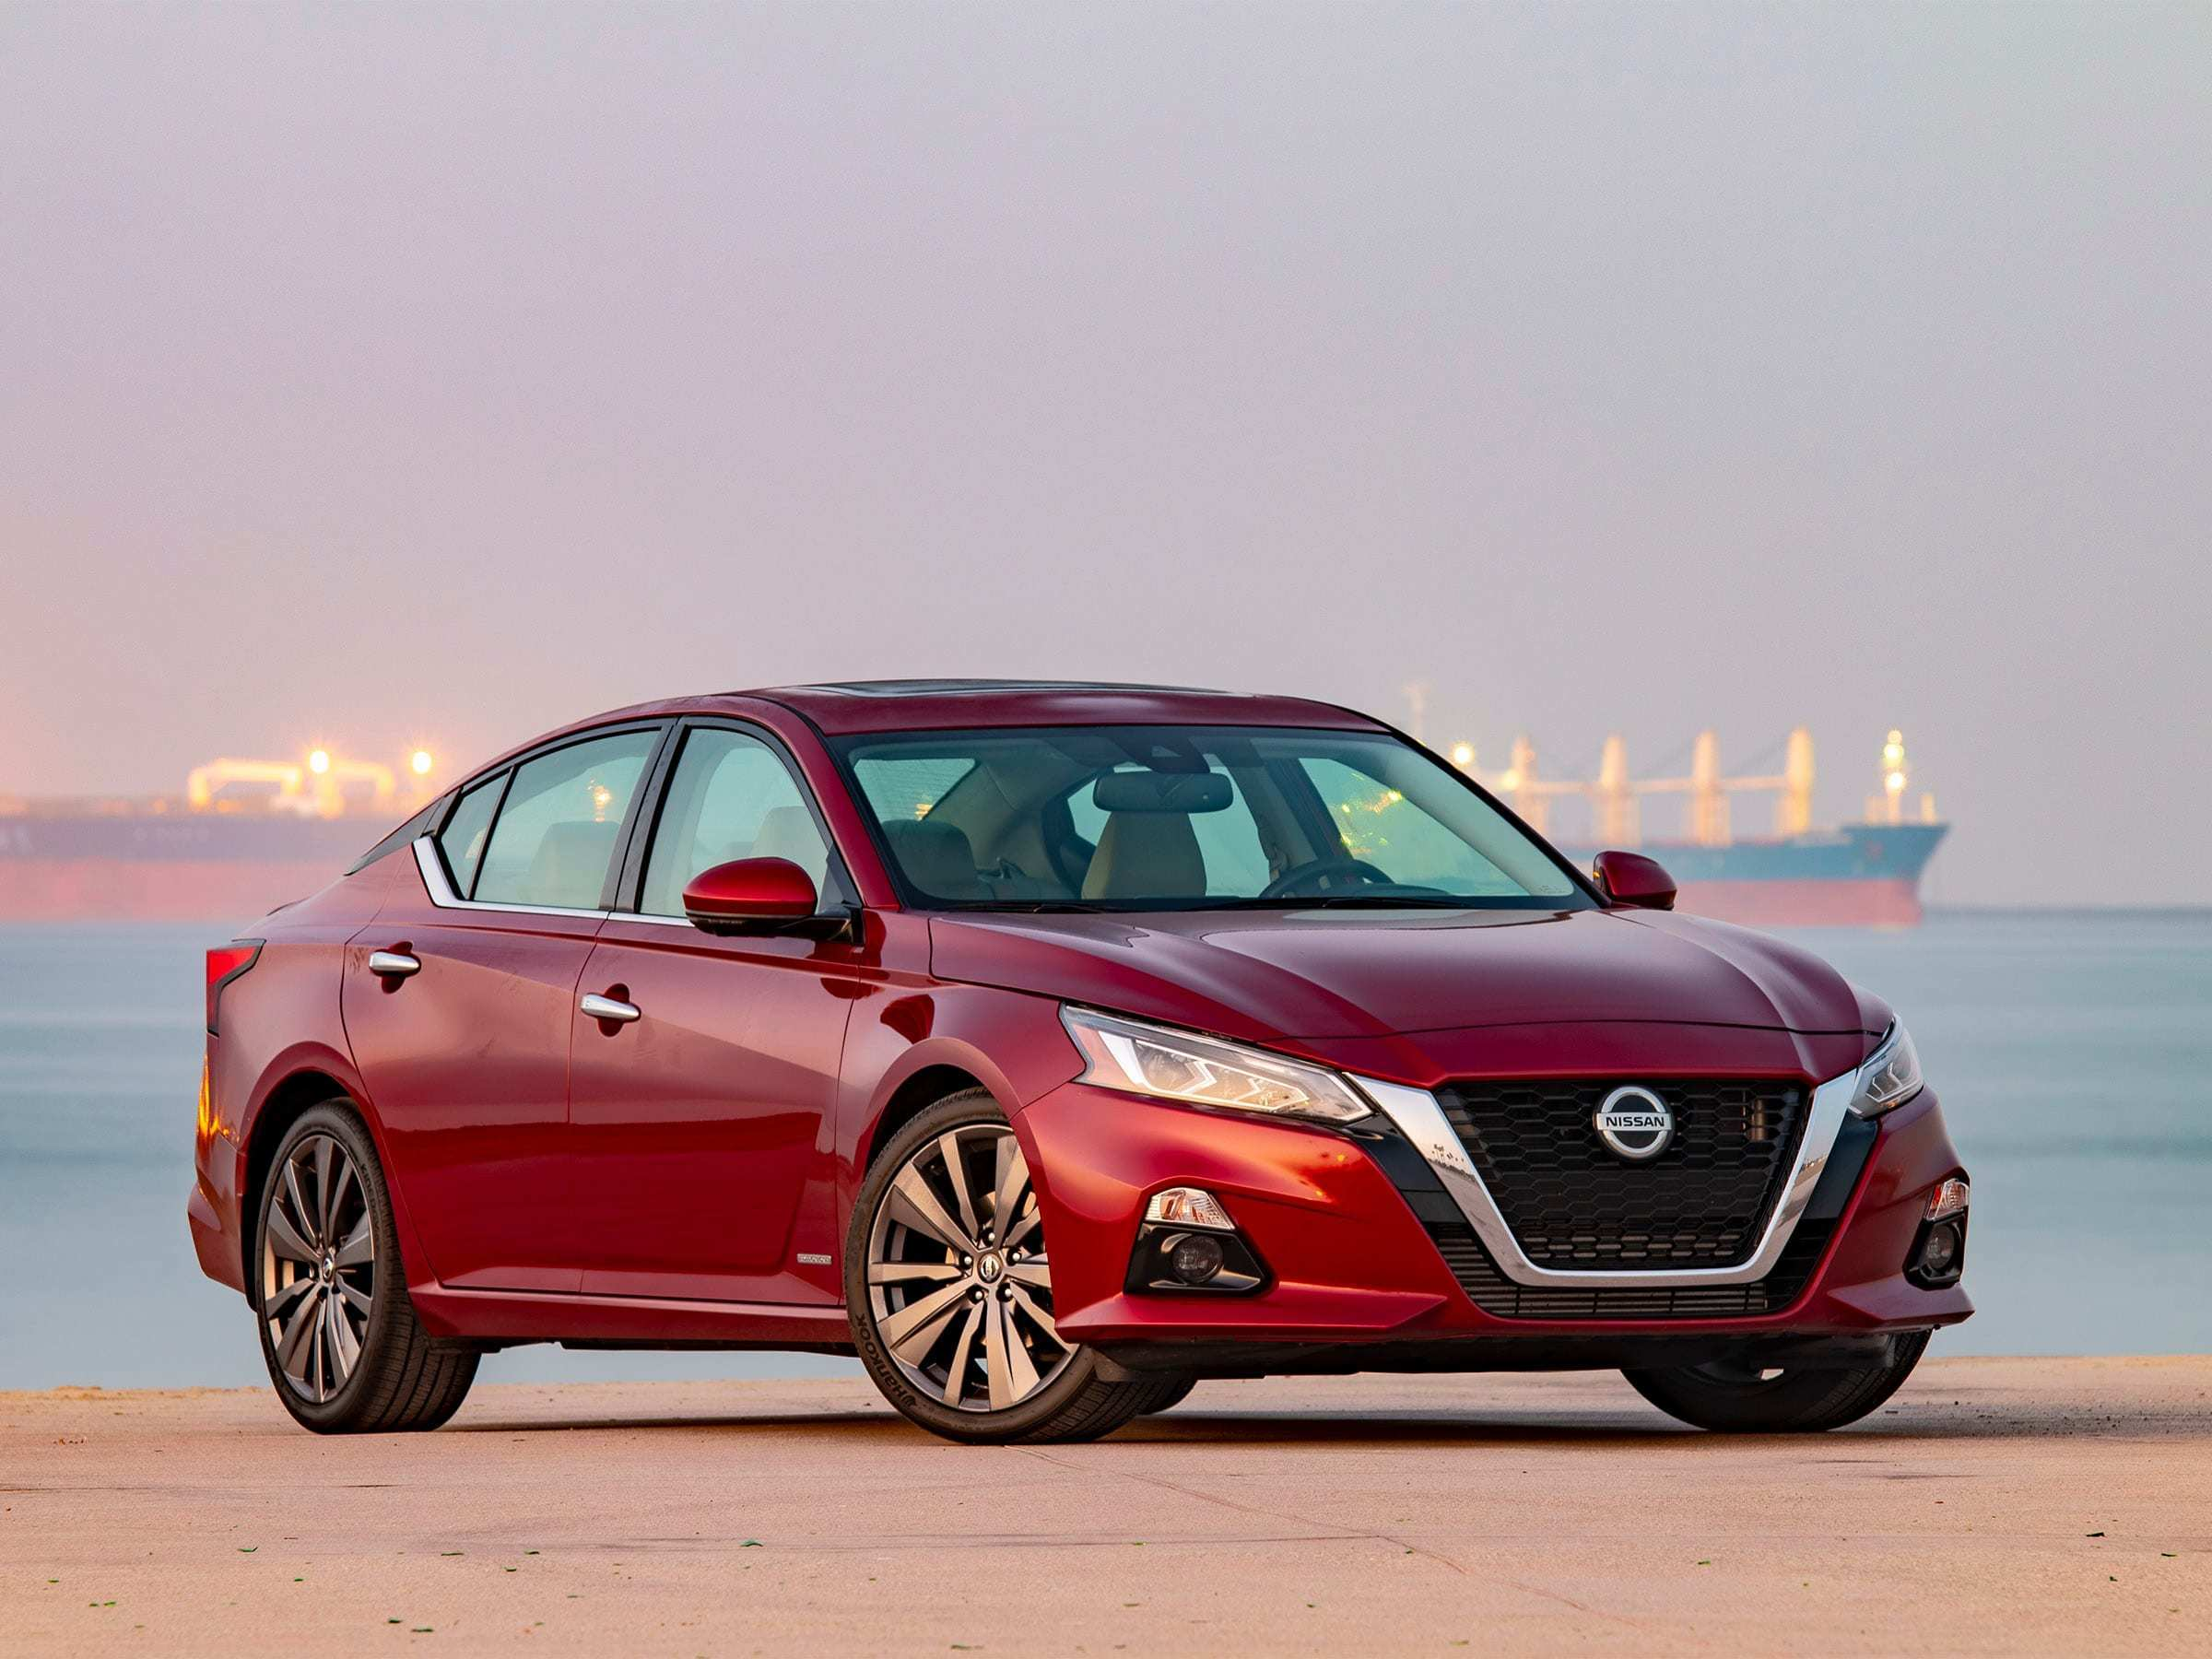 29 Best Review 2019 Nissan Altima News Interior for 2019 Nissan Altima News